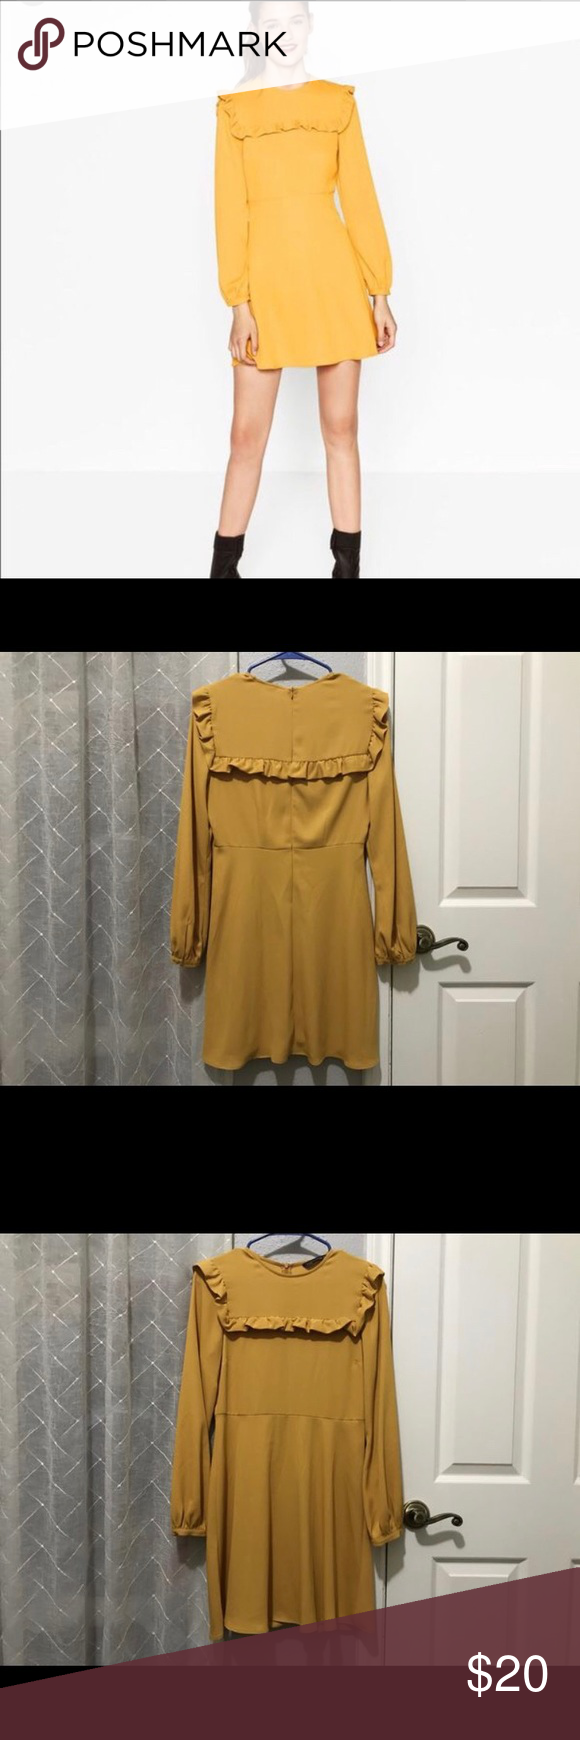 Yellow zara long sleeve shift dress zara dresses dress brands and